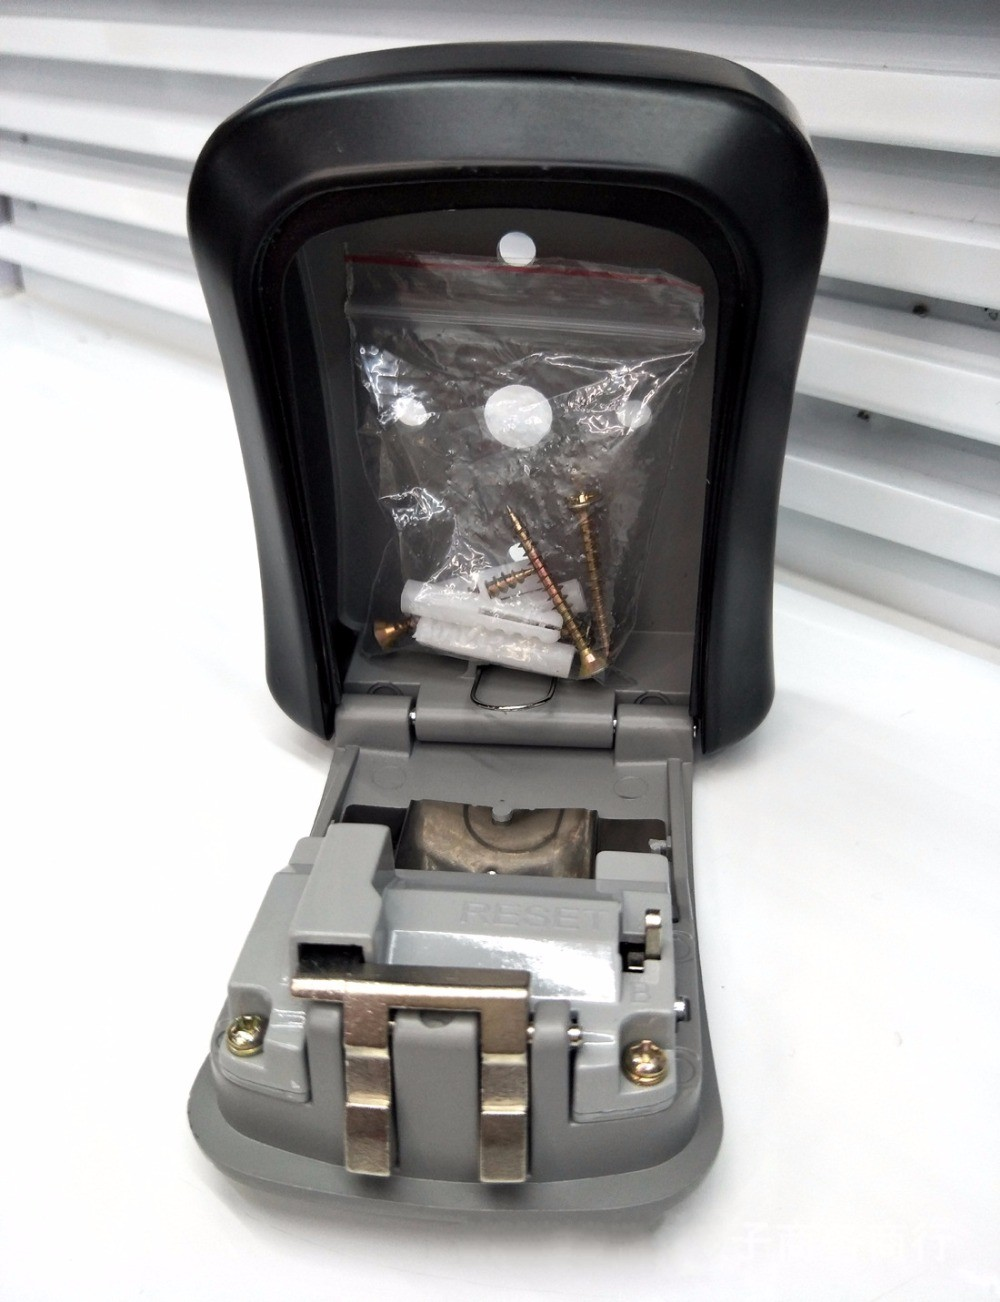 NEW STEEL OUTDOOR WALL KEY BOX WITH COMBINATION STORE KEYS HIGH SECURITY LOCK Home SAFE